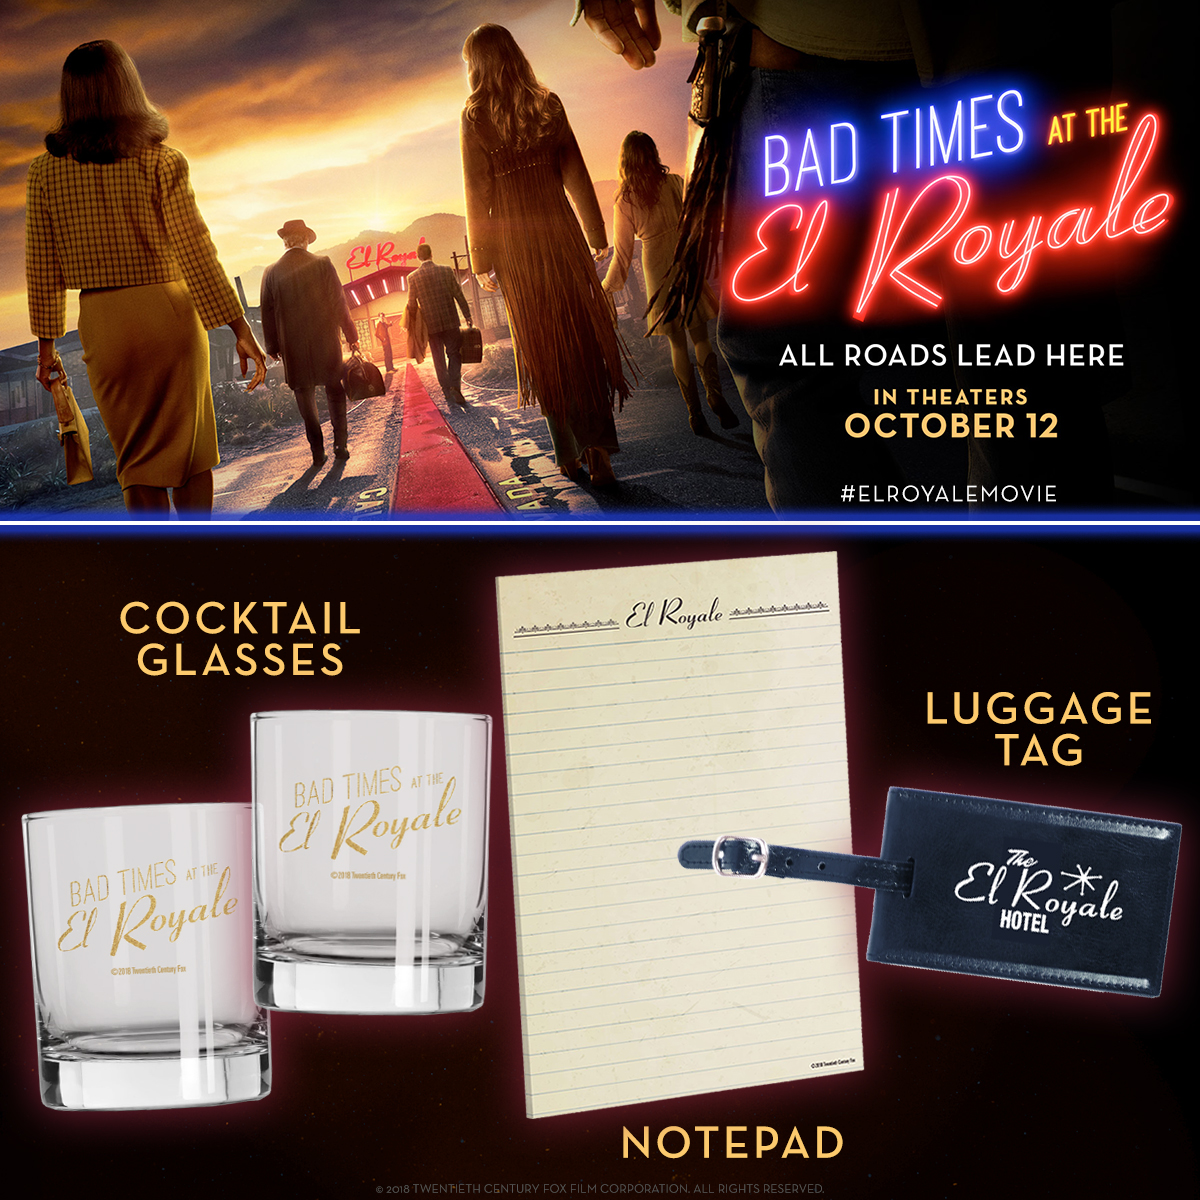 Bad Times at the El Royale Sweepstakes